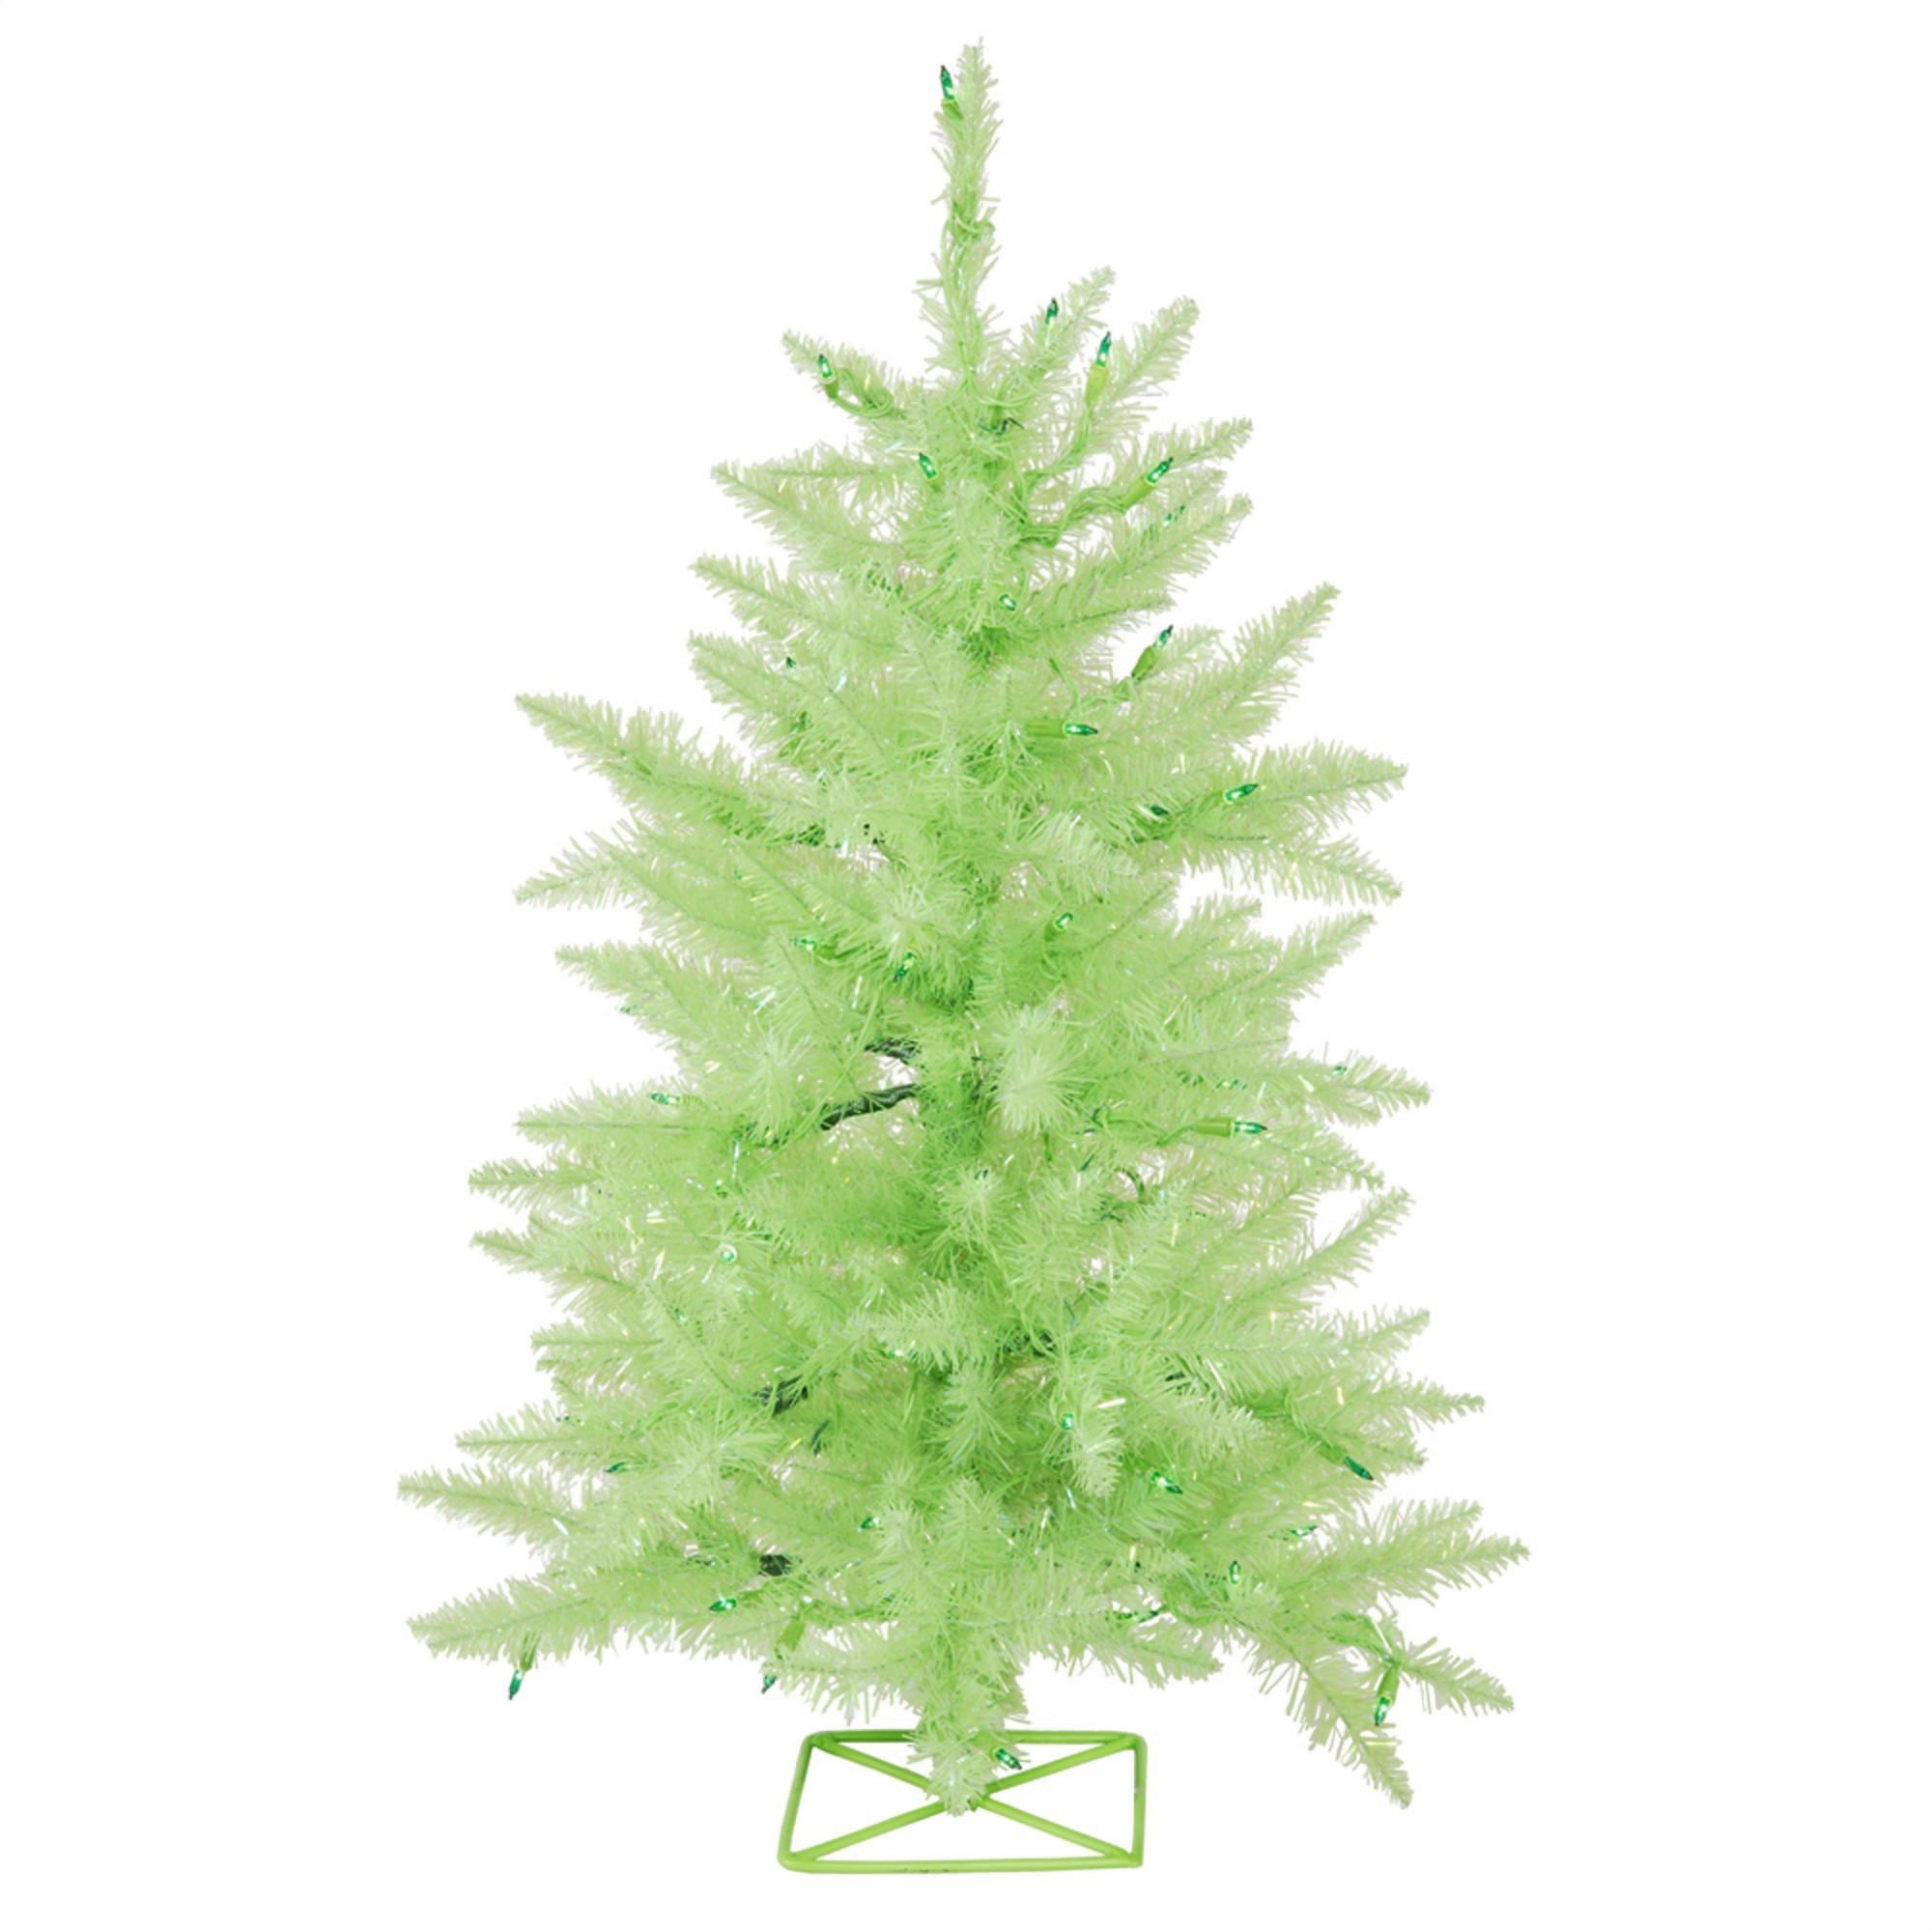 Artificial Christmas Tree. Fake 2ft Xmas Lime Green Fir Classic Pine Shape. Fully Decorated. Compact, With Lush Branches & Natural Look. Great For Indoor Holiday Season Party Decor. Festive Mood.